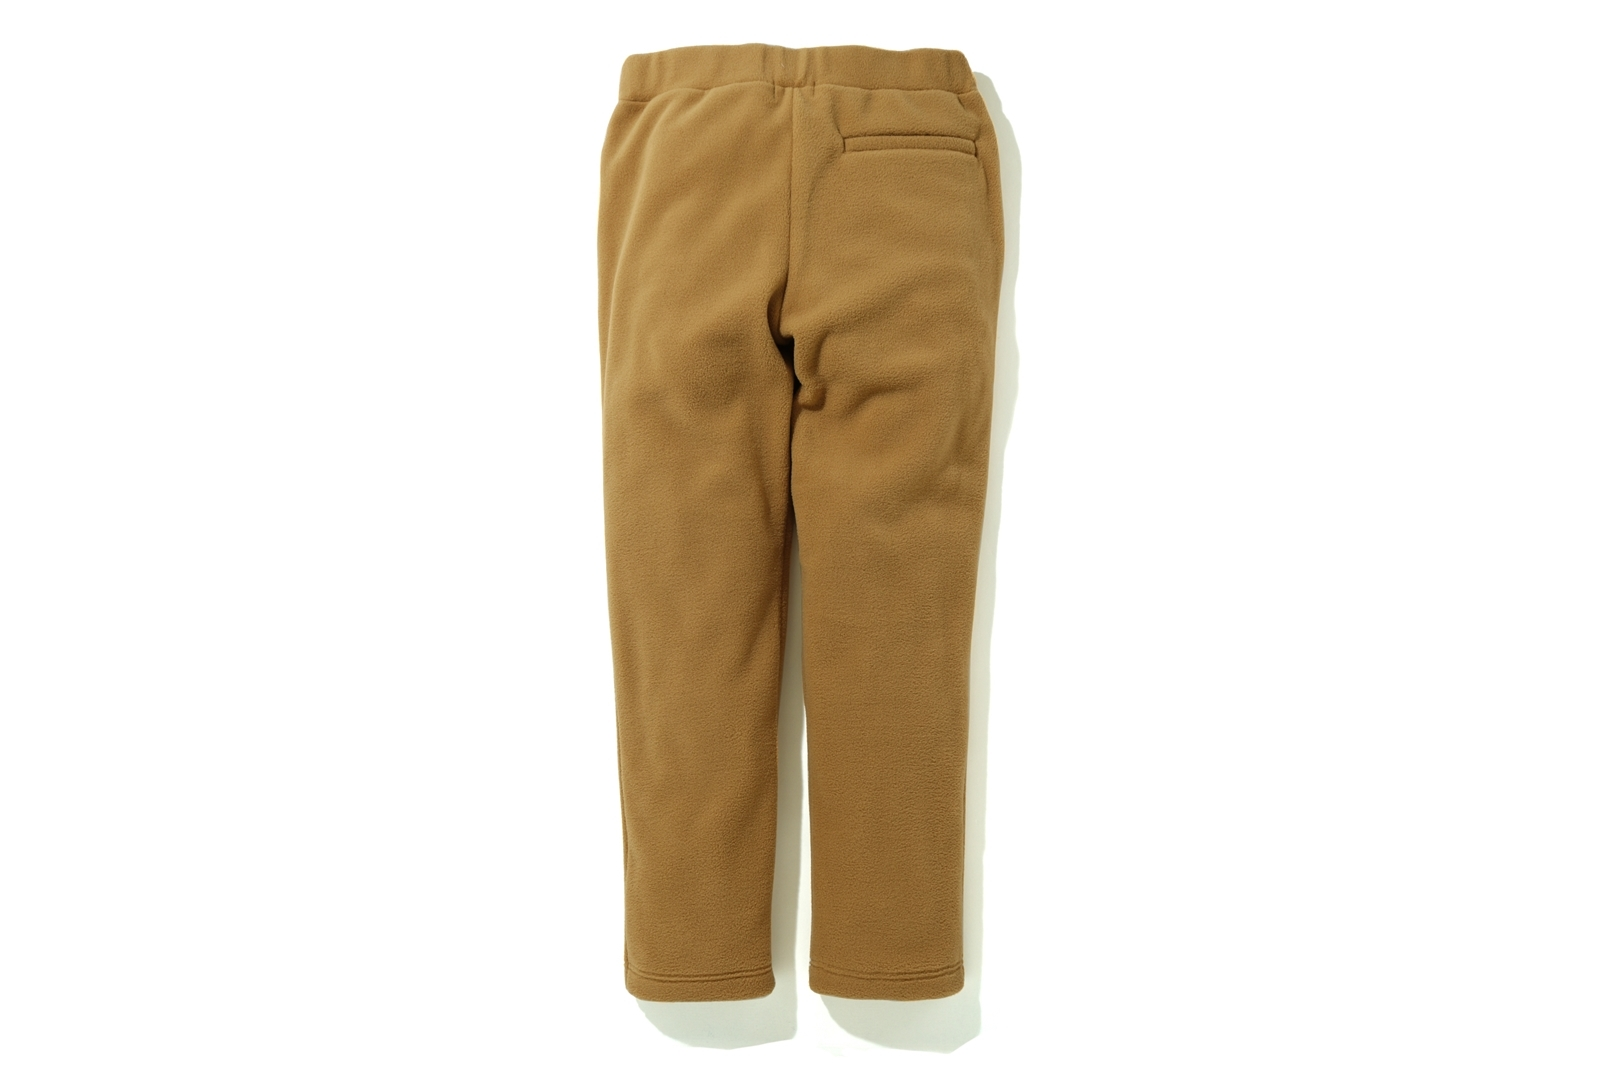 FLEECE ONE POINT PANTS_a0174495_17111541.jpg